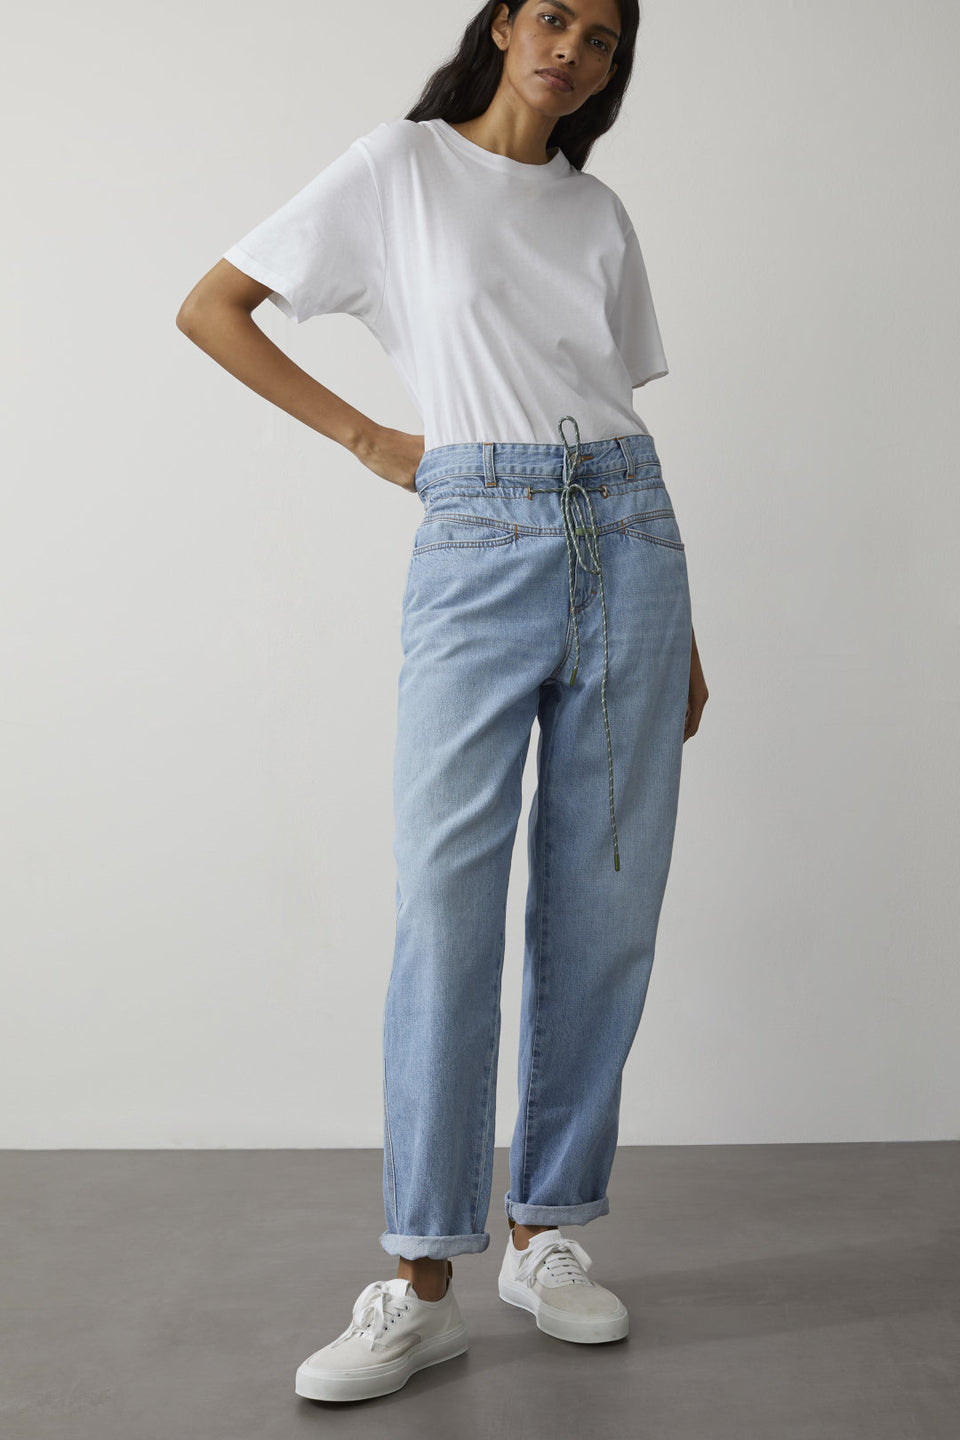 CLOSED • Pantalon Société Anonyme Jean Light Blue